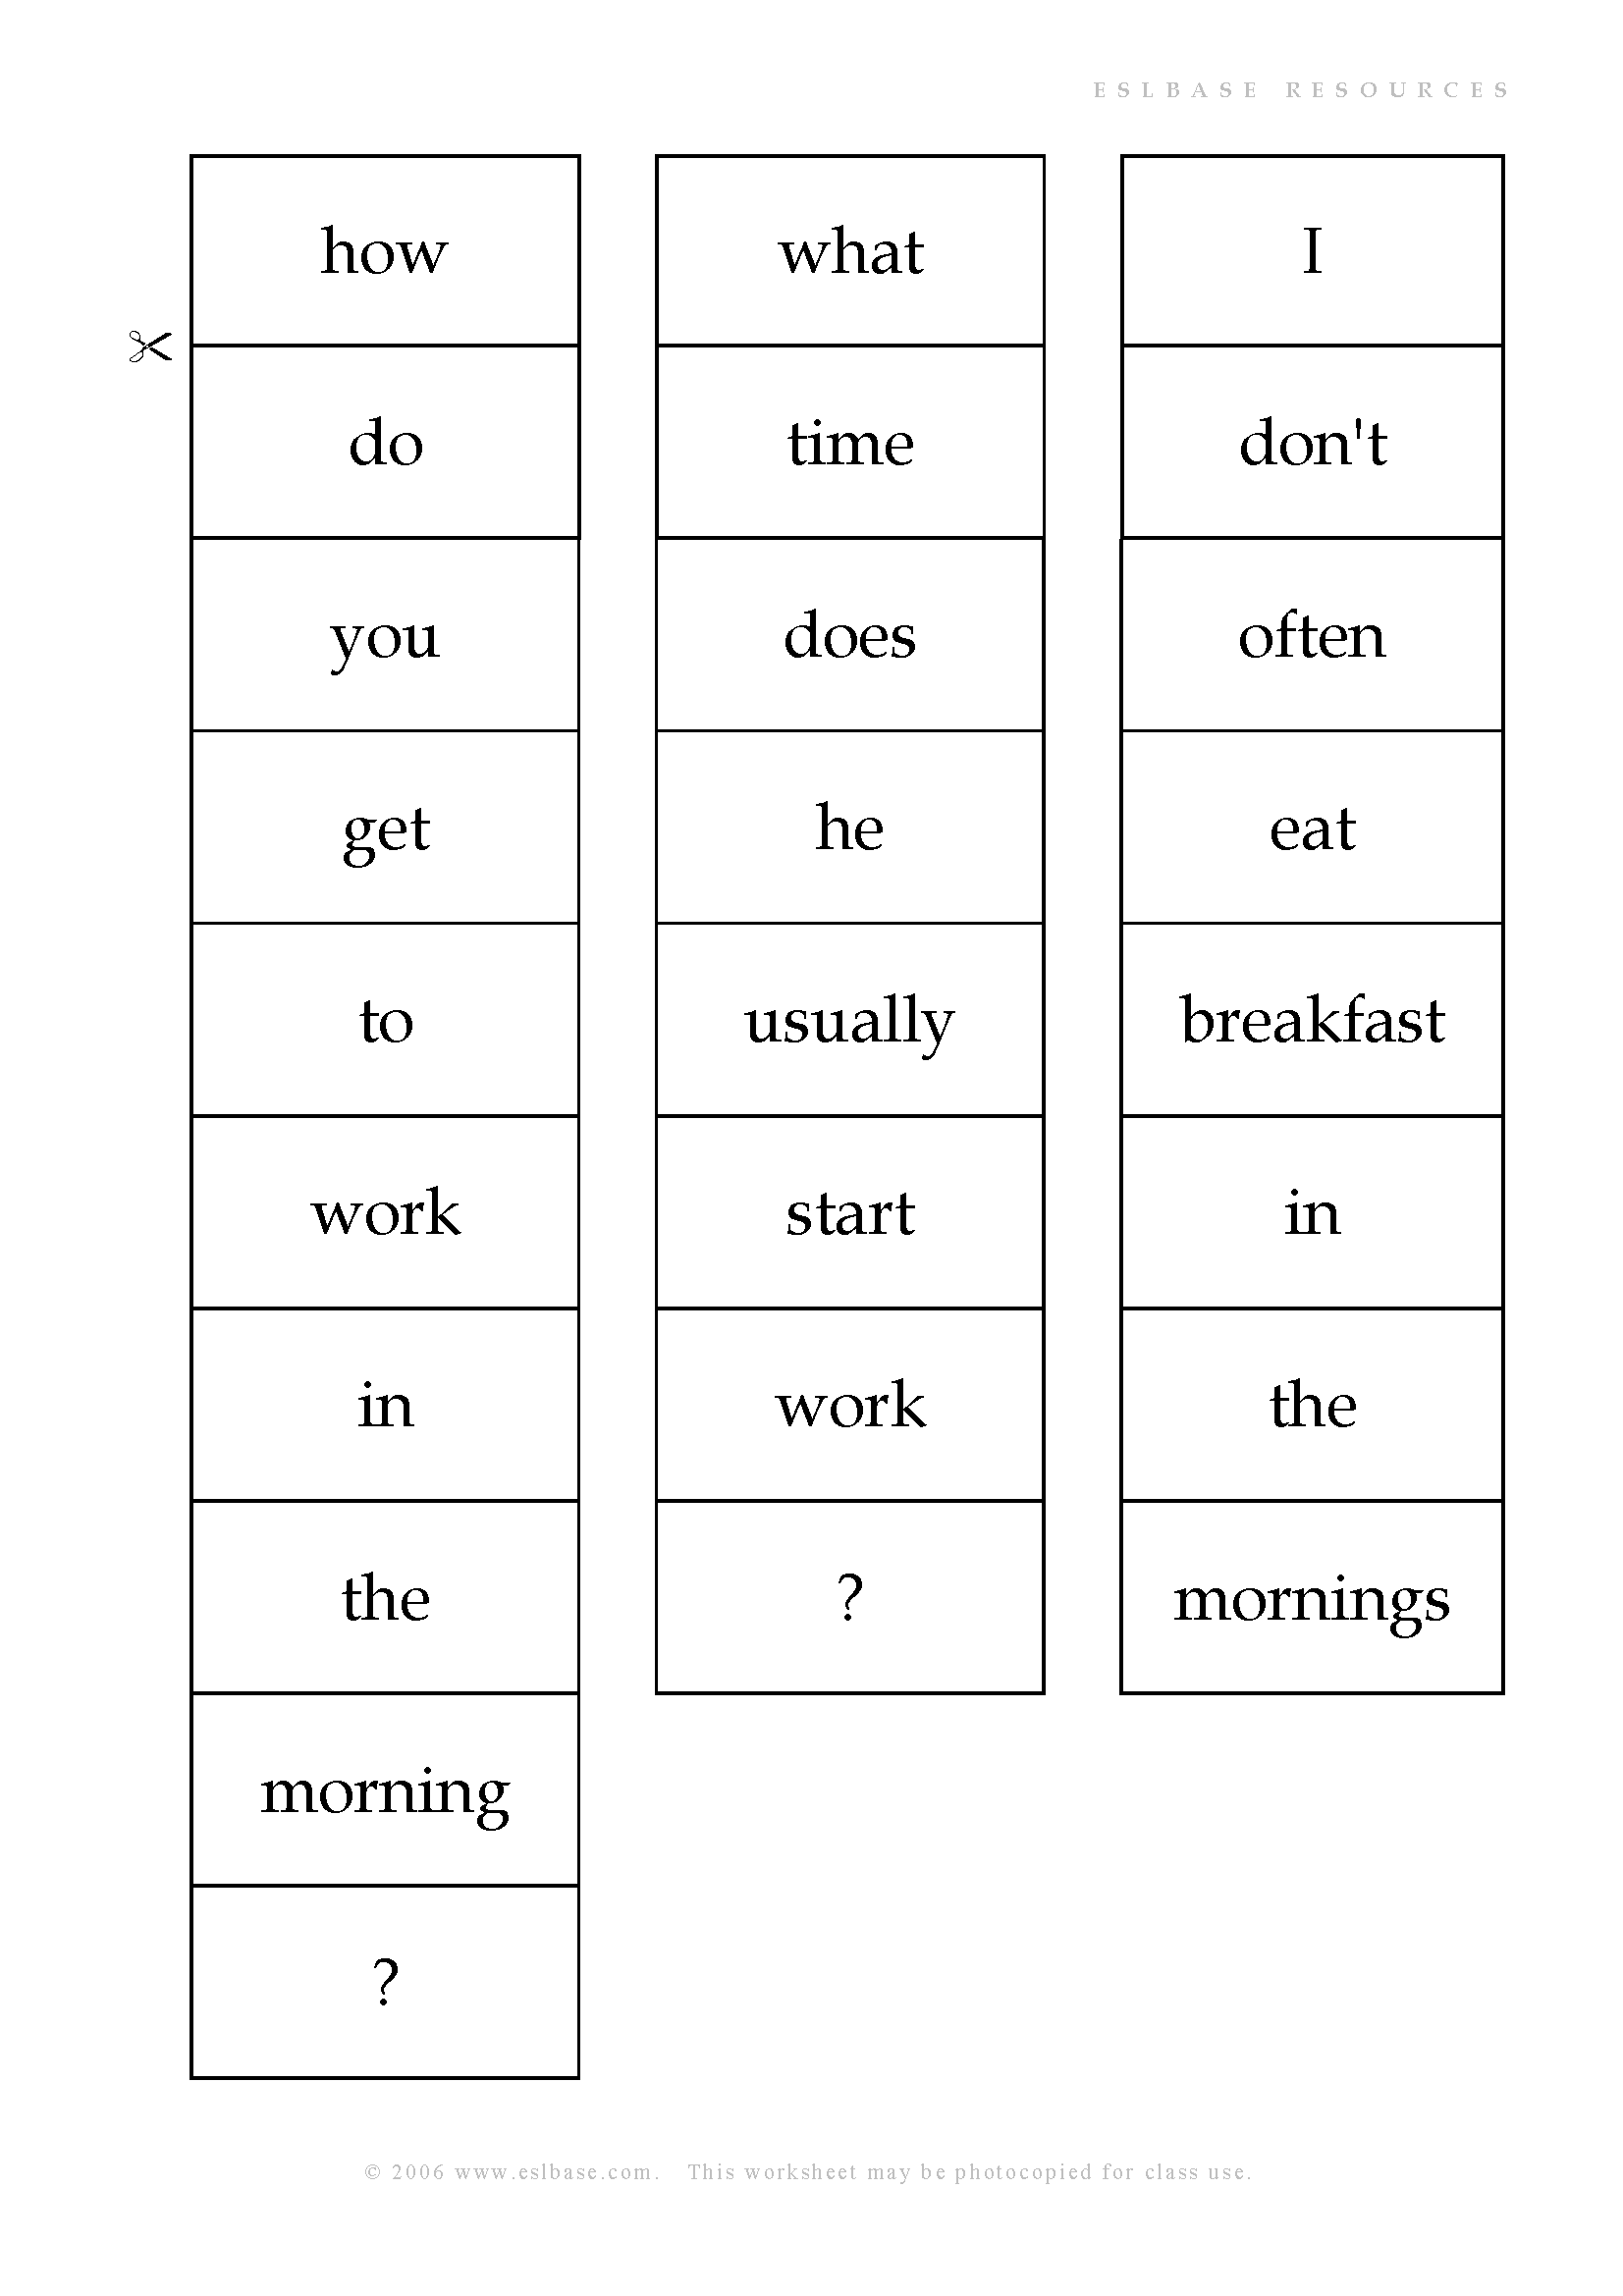 Present simple and adverbs of frequency activity